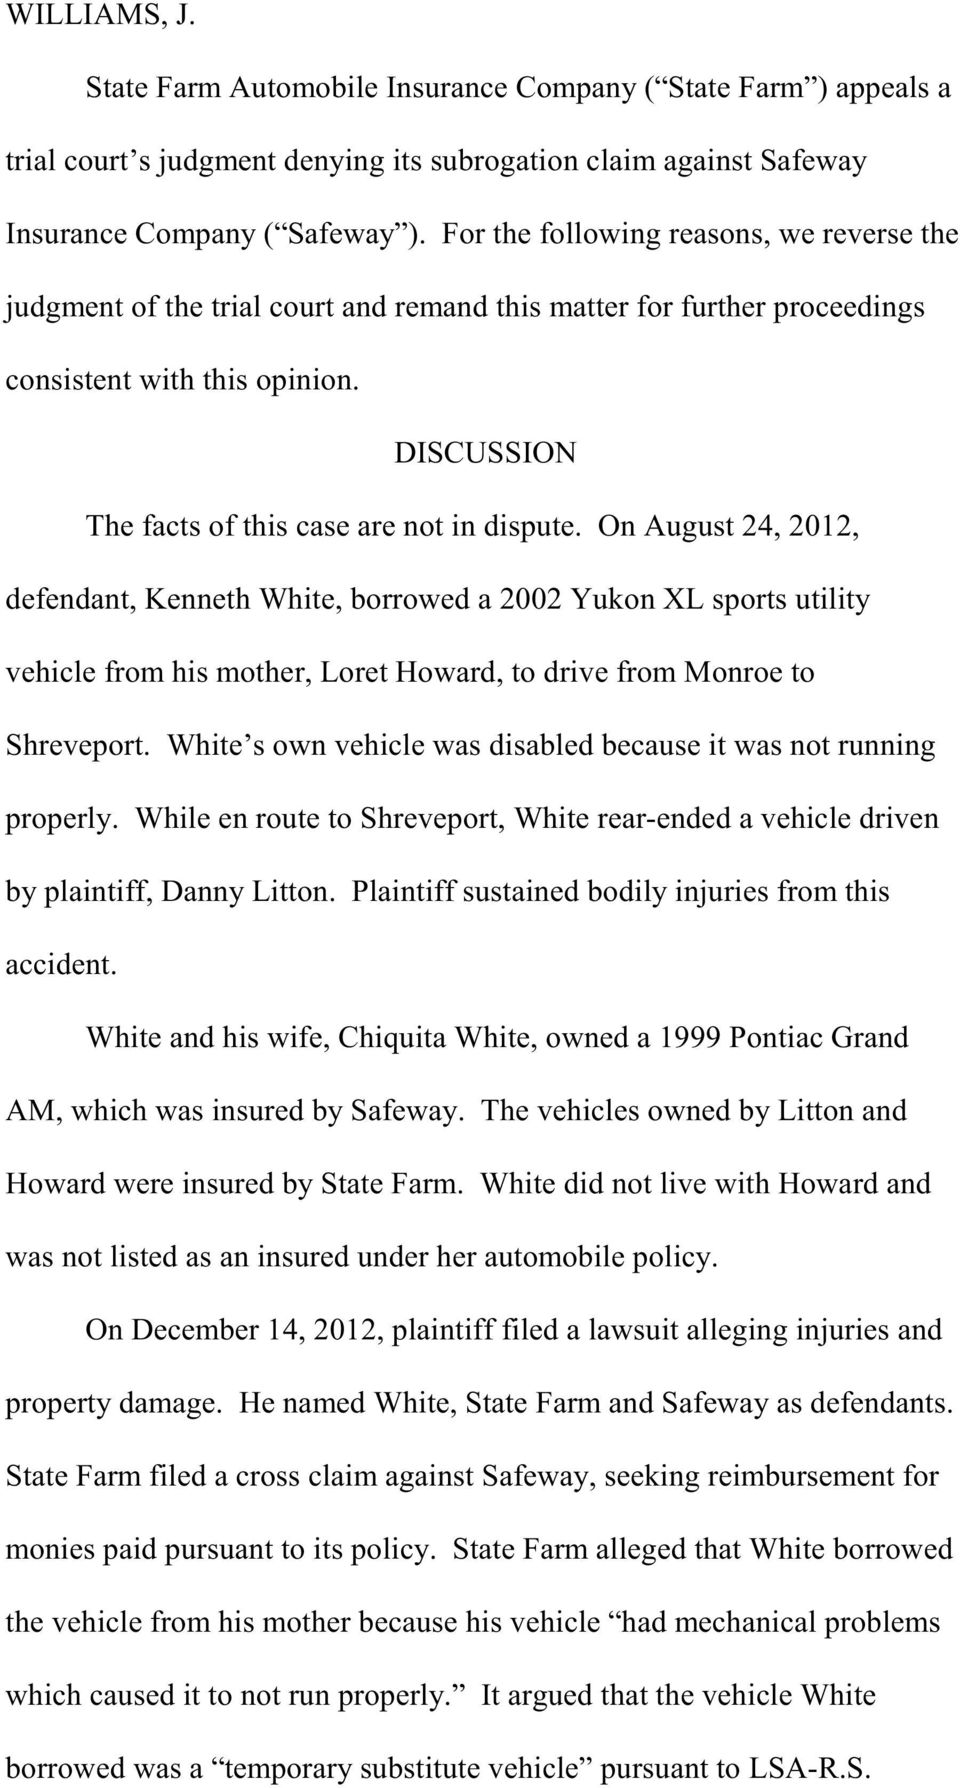 On August 24, 2012, defendant, Kenneth White, borrowed a 2002 Yukon XL sports utility vehicle from his mother, Loret Howard, to drive from Monroe to Shreveport.